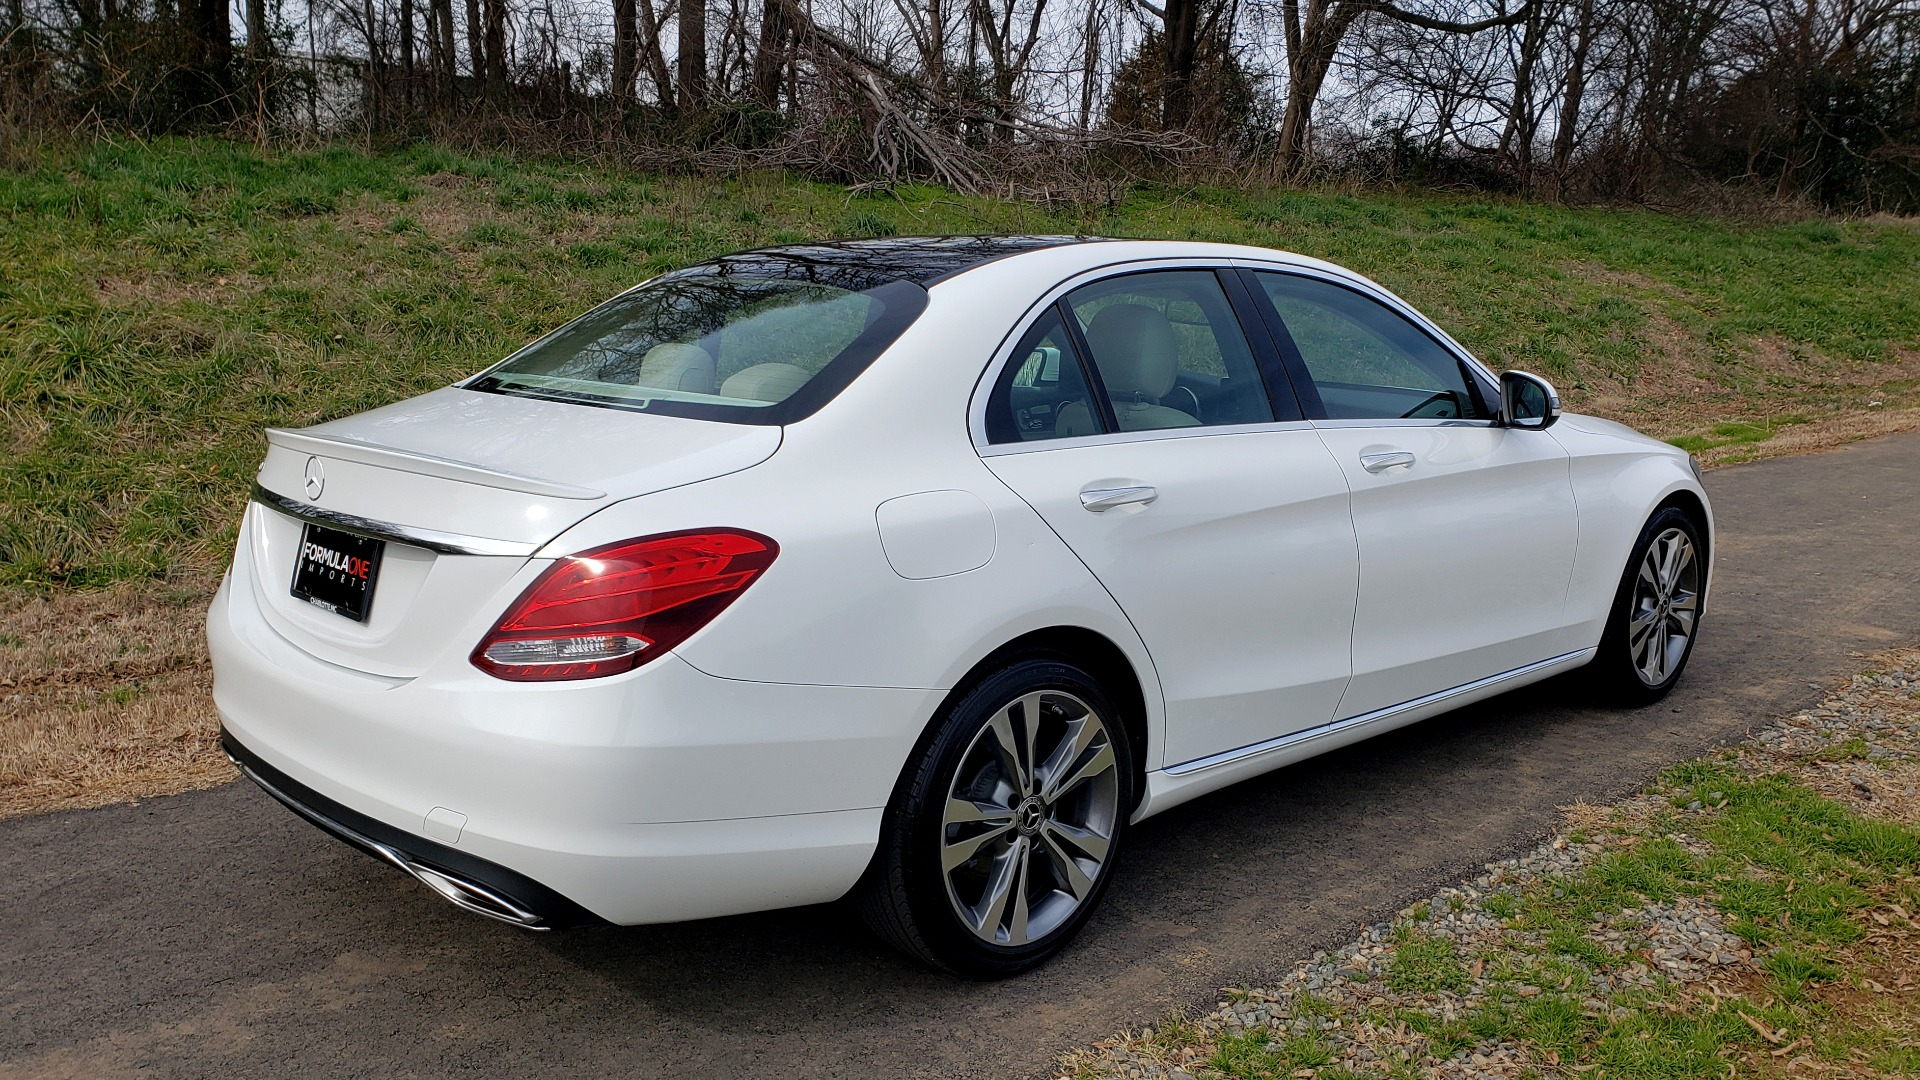 Used 2017 Mercedes-Benz C-CLASS C 300 / PREM PKG / PANO-ROOF / REARVIEW / HTD STS for sale Sold at Formula Imports in Charlotte NC 28227 6